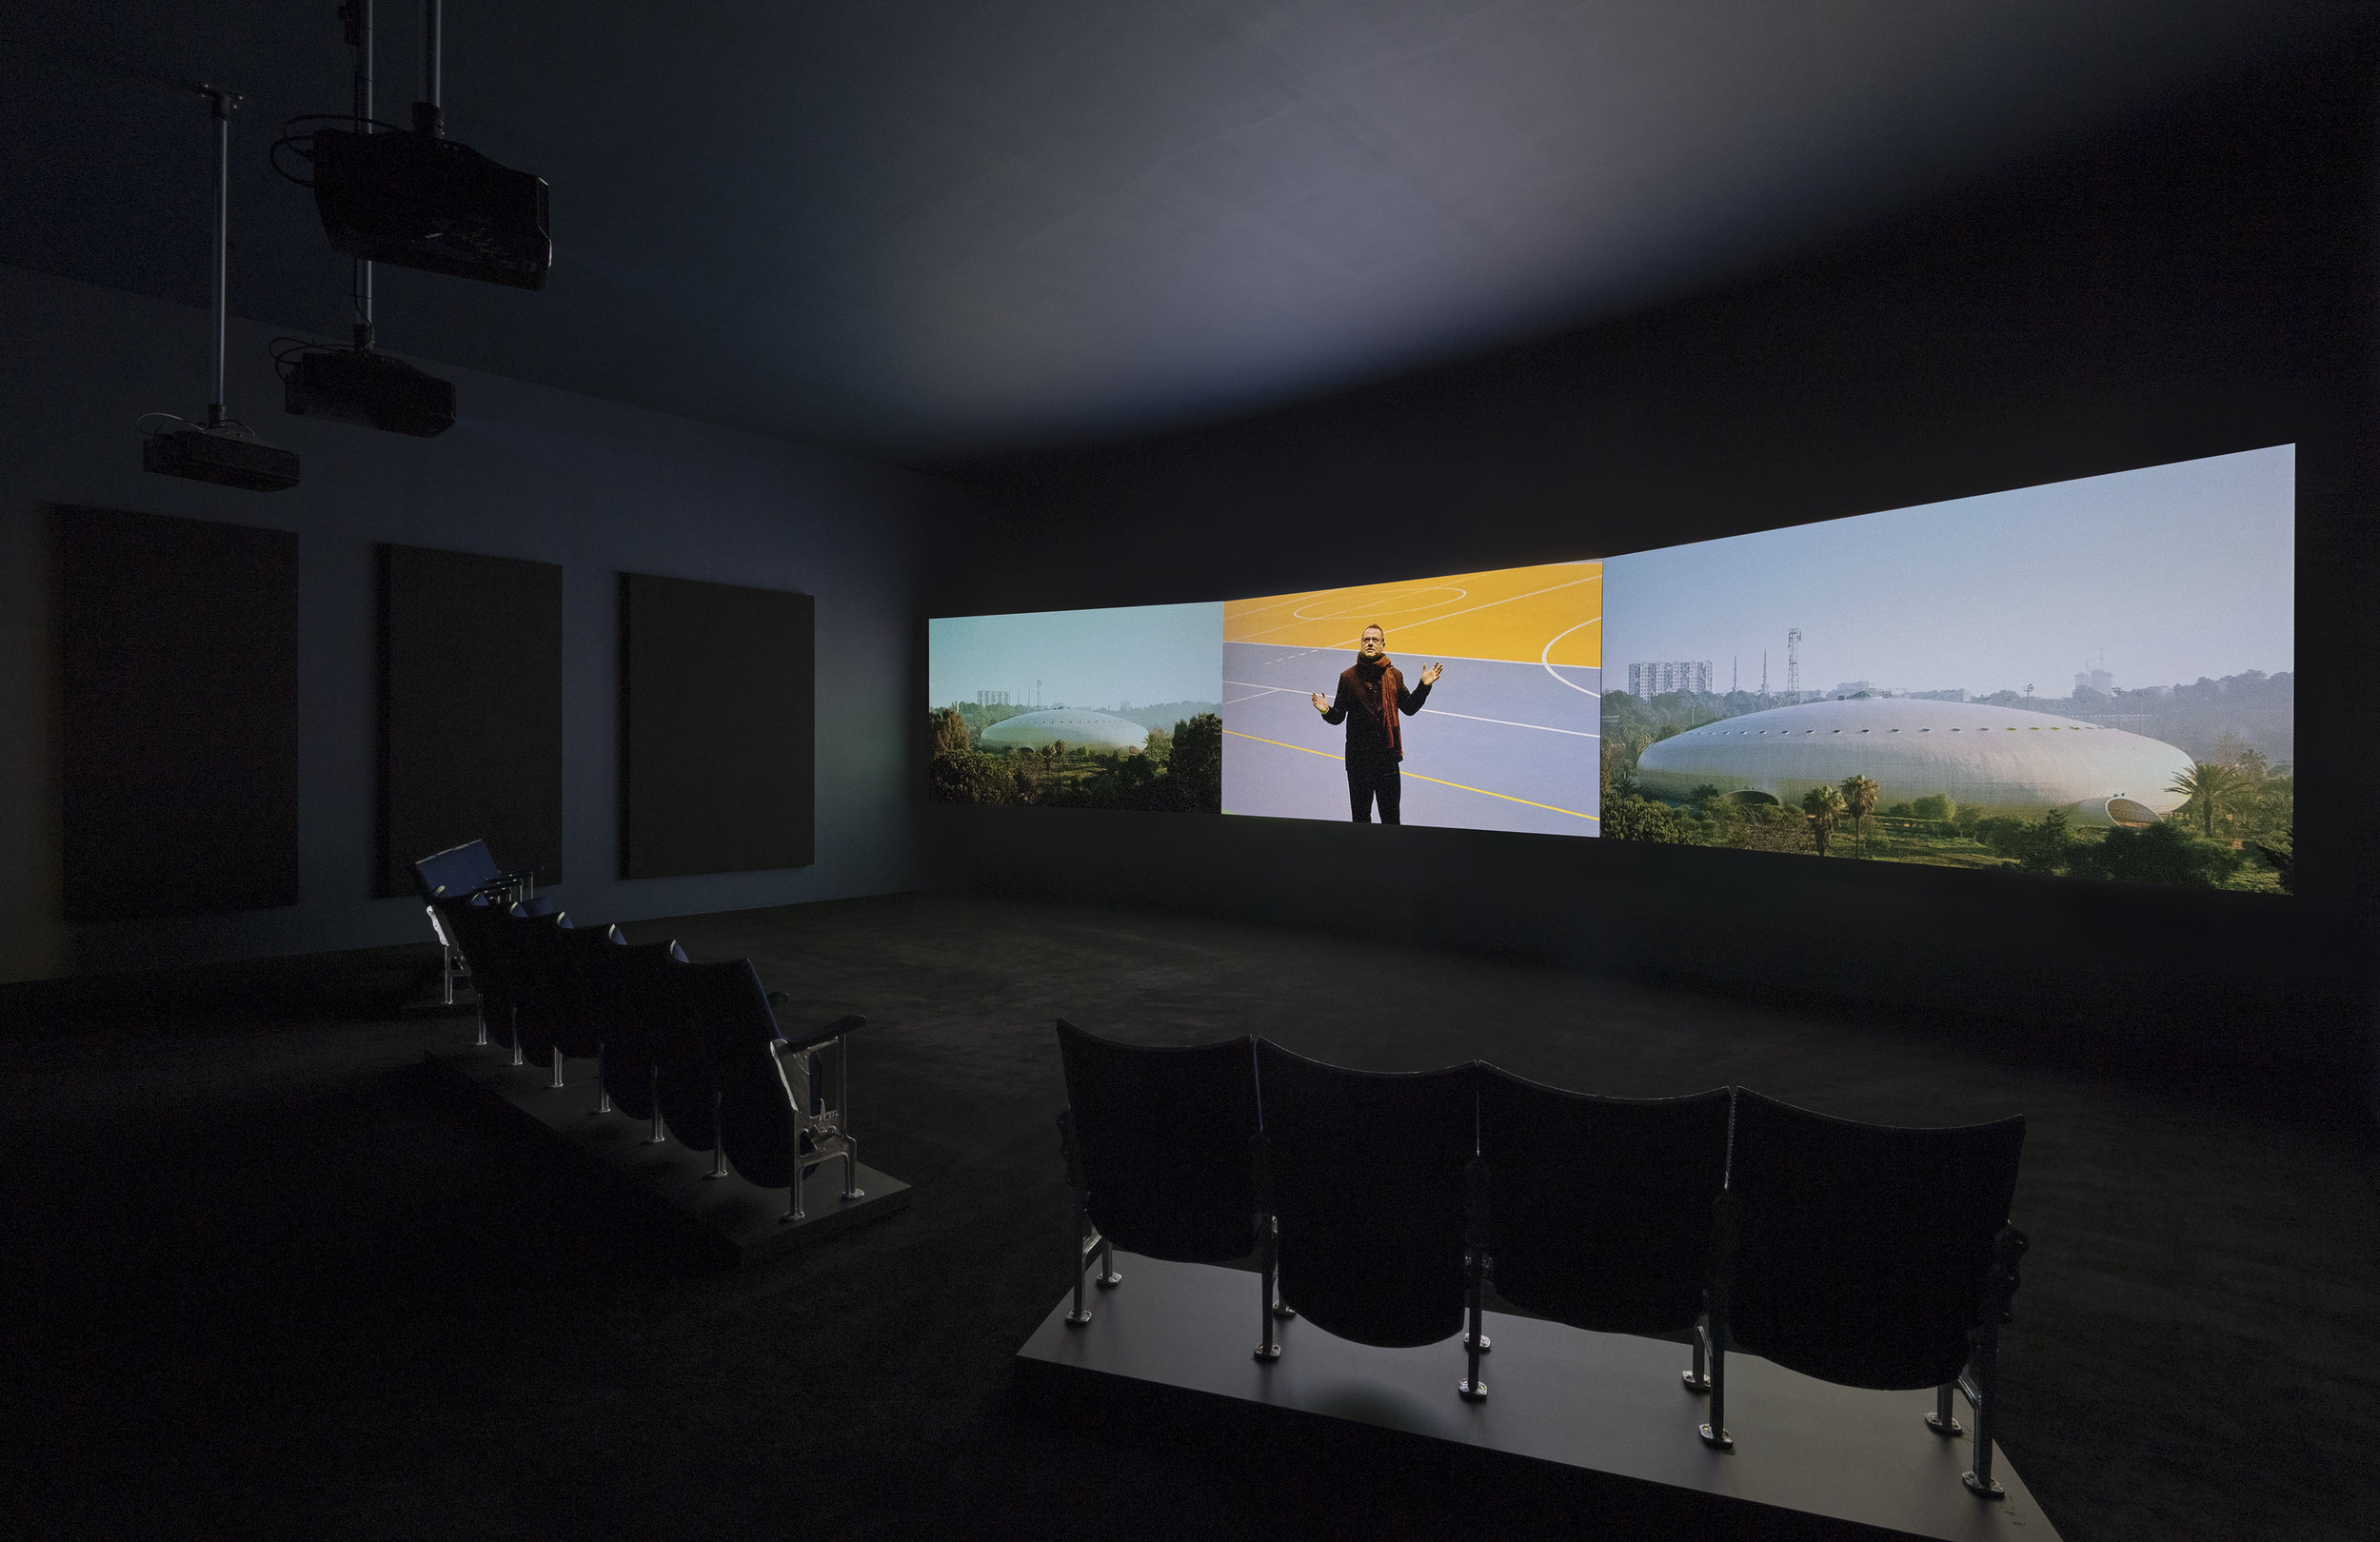 Naeem Mohaiemen, Two Meetings and a Funeral 2017, three-channel video, Turner Prize 2018 exhibition installation view, Tate Britain (26 September 2018 - 9 January 20191.